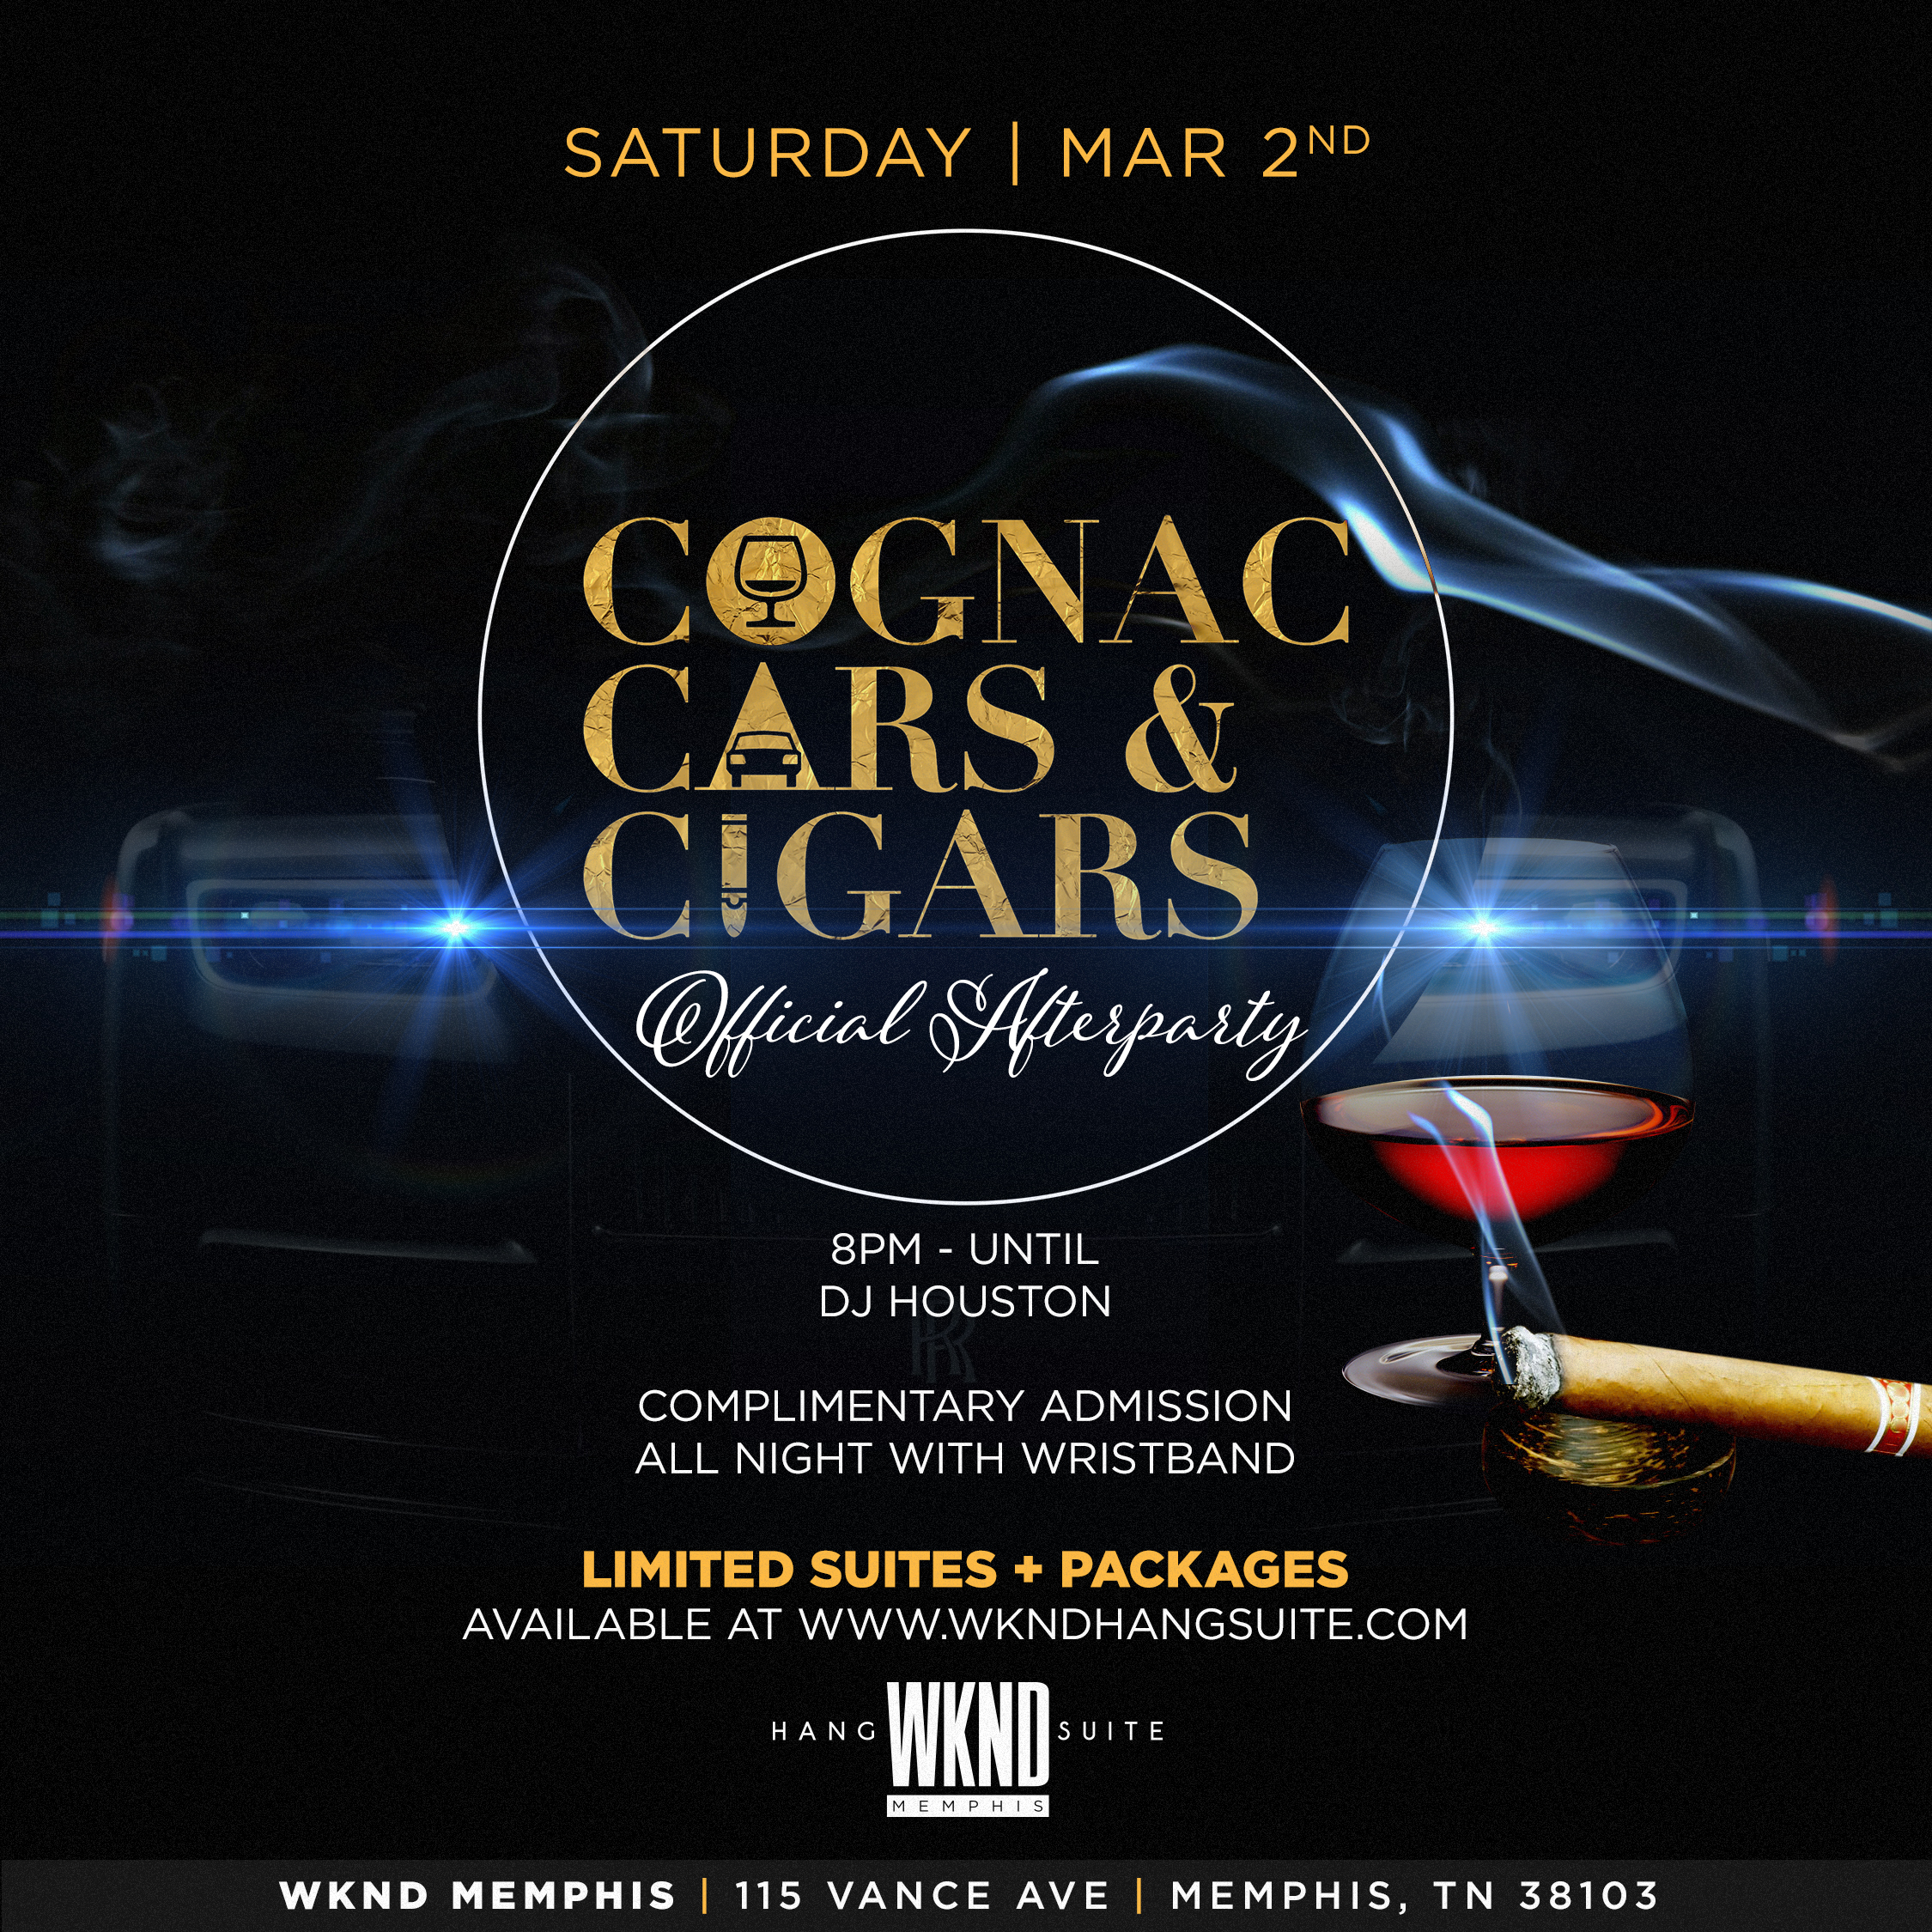 Cognac Cars & Cigars Official Afterparty — WKND Hang Suite